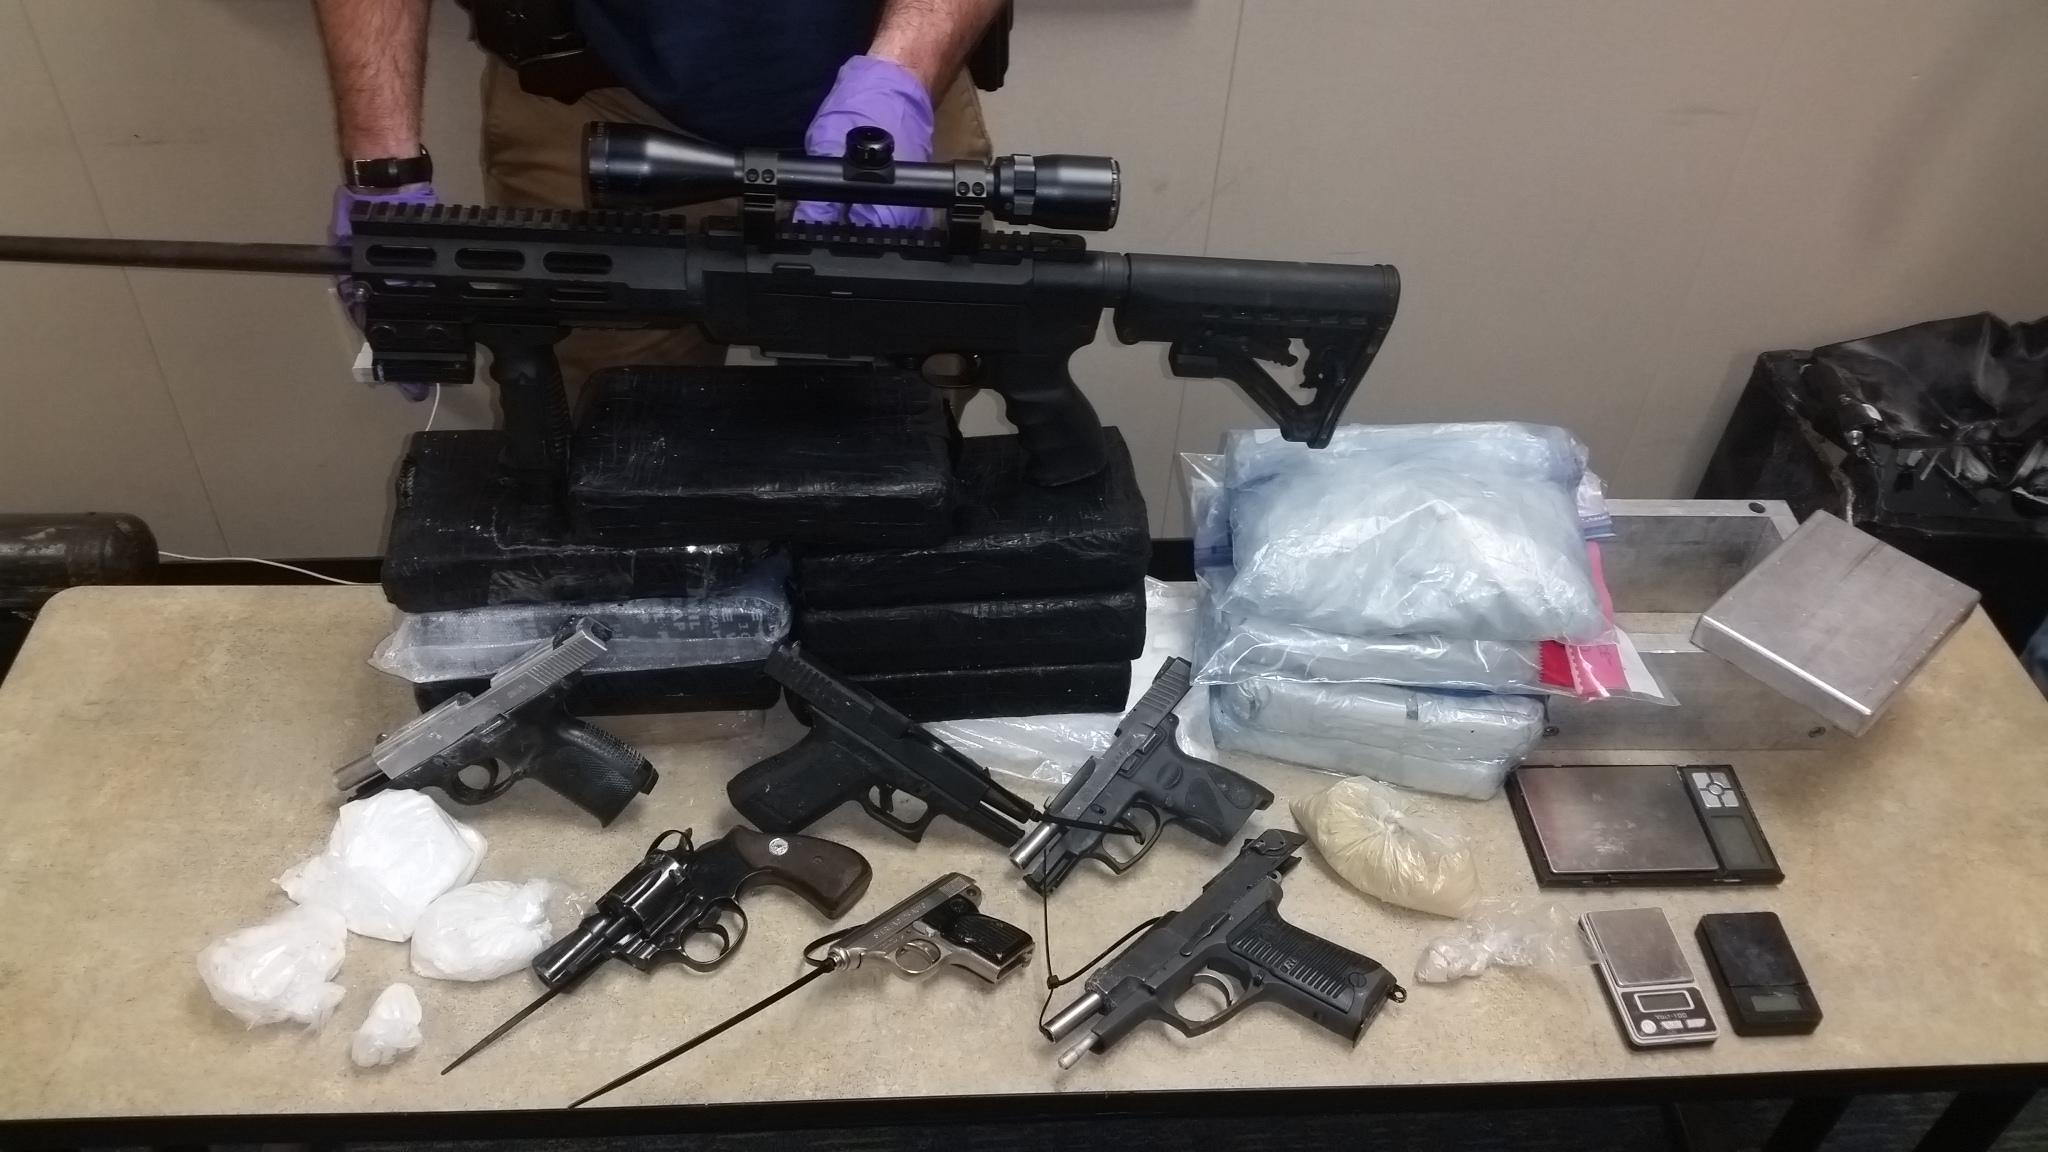 Seized drugs and weapons.jpg